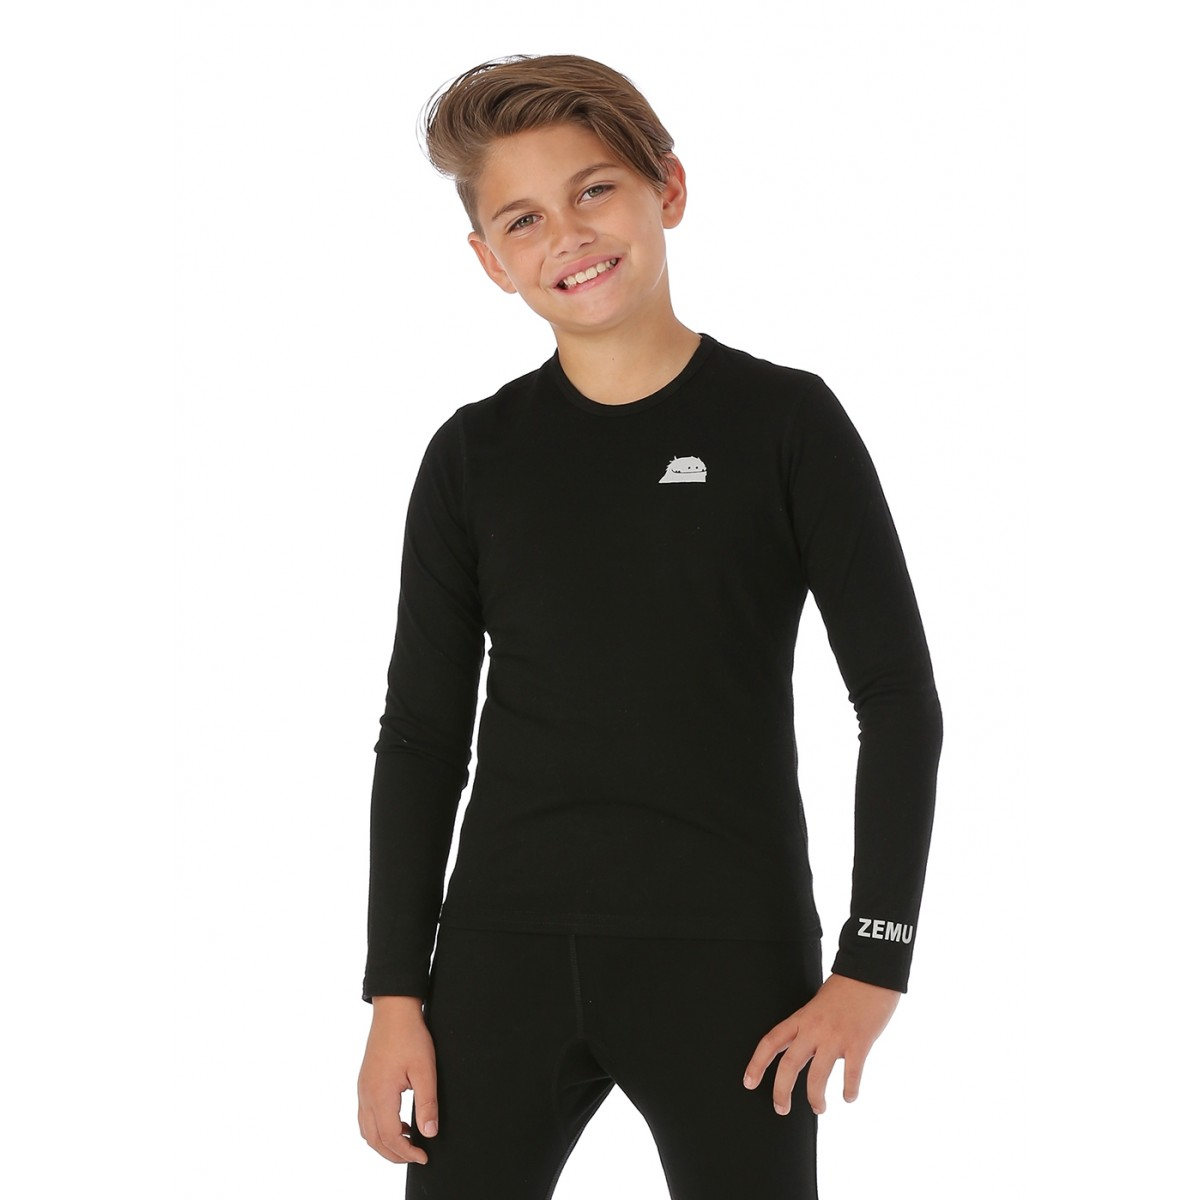 Zemu Apparel Youth Solid First Layer Long Sleeve Crewneck